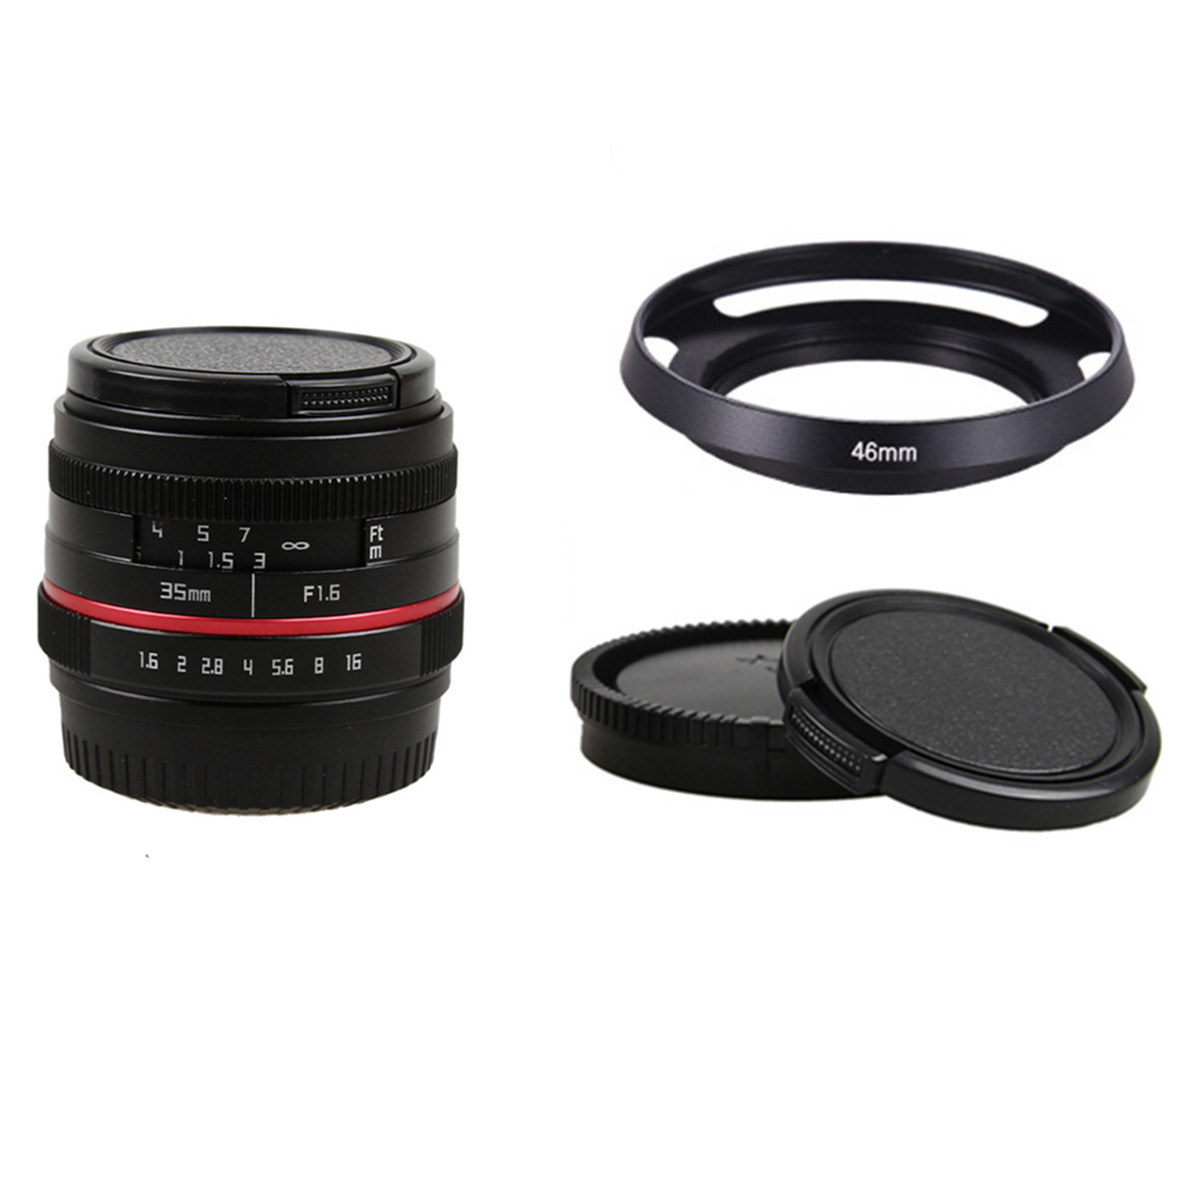 50mm f/1.8 APS-C F1.8 camera Lens for SONY E Mount A6500 A6300 A6100 A6000 A5100 A5000 NEX-7 NEX-6 NEX5/B/R NEX-3 35mm f1 6 cctv lens c mount camera lens lens hood kit for sony a6500 a6300 a5100 a6100 a6000 a5000 a3000 nex 5t nex 3n nex 6